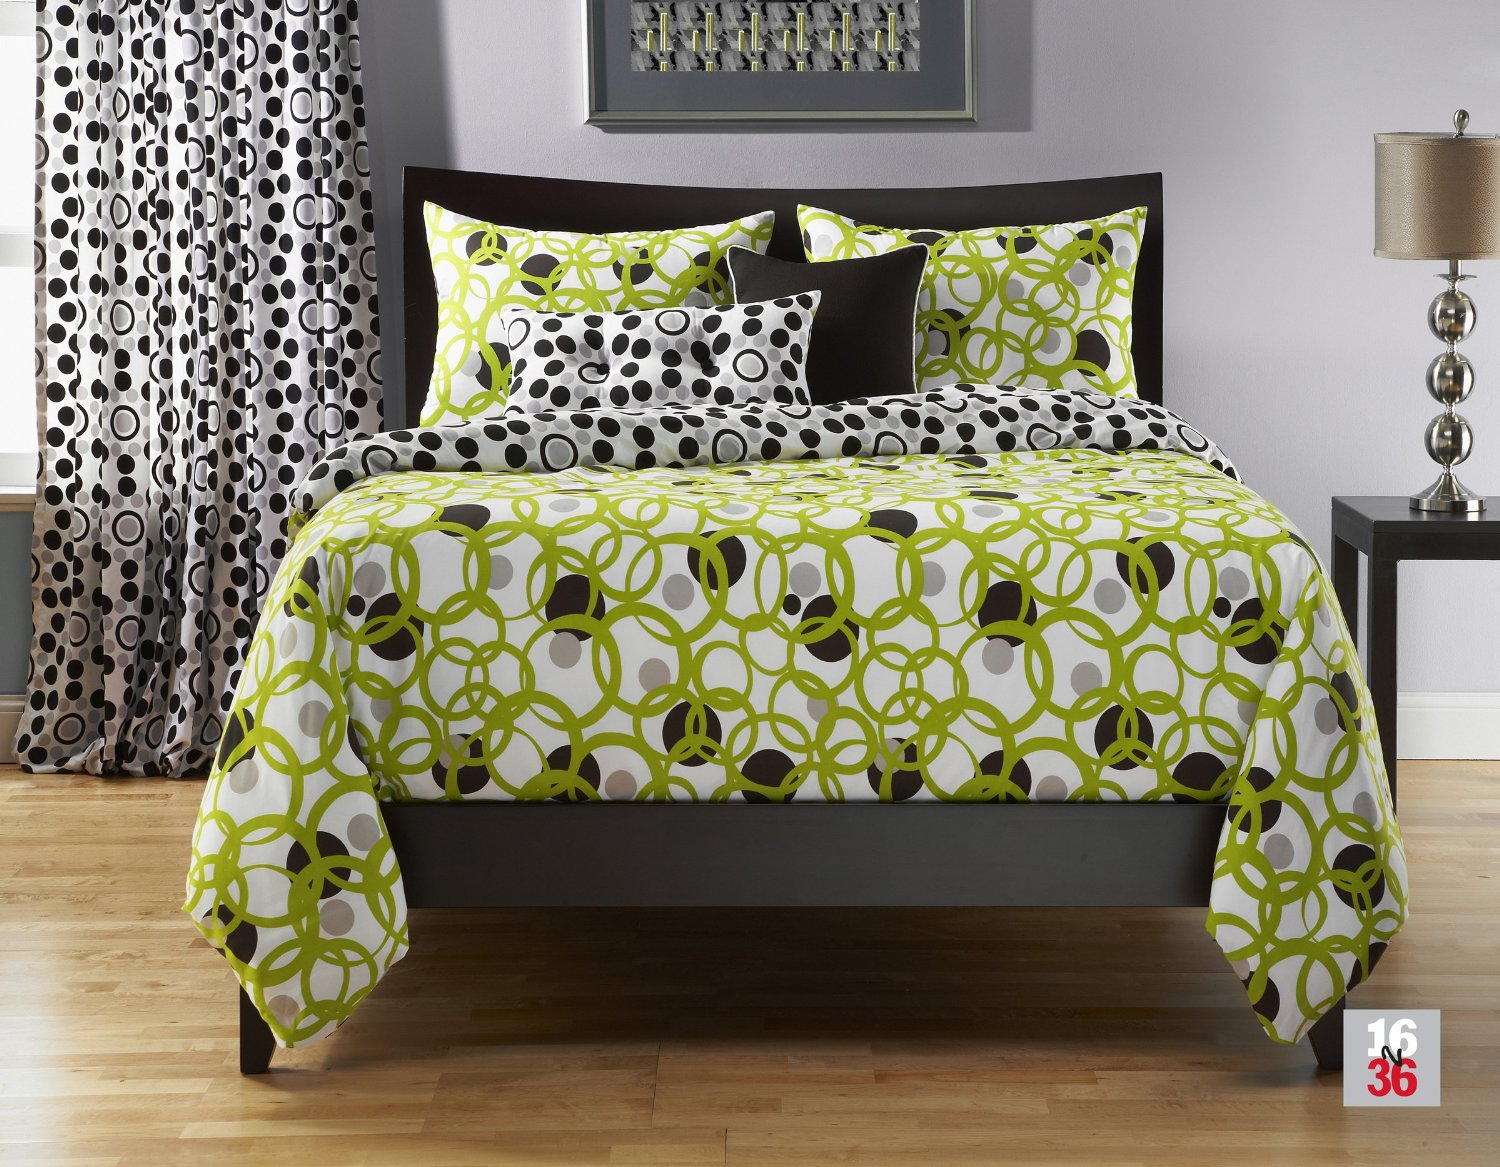 Total fab lime green black and white bedding for Black and lime green bedroom ideas